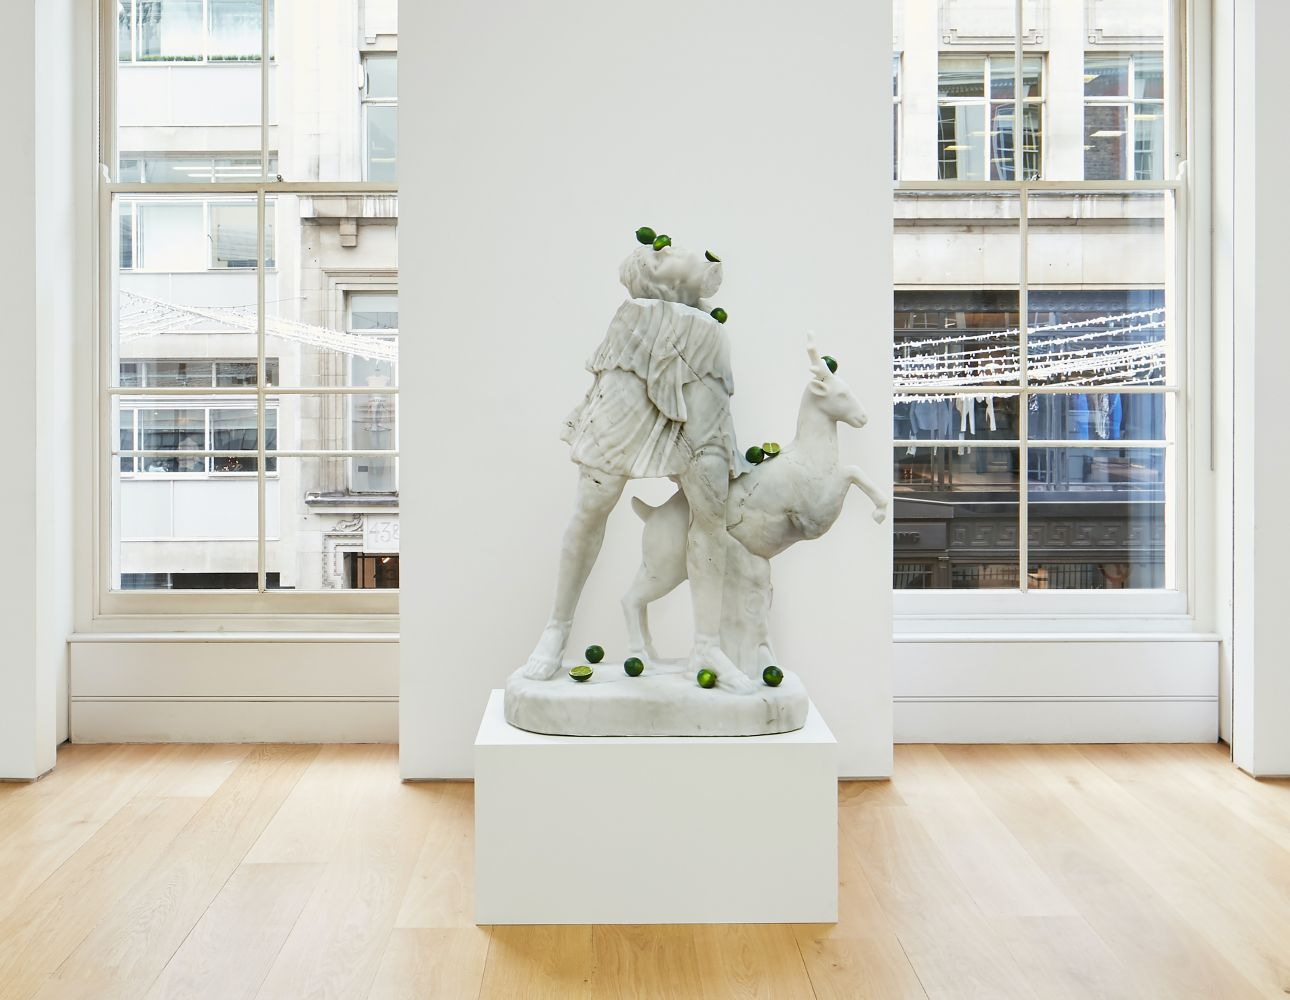 Installation view of a painted bronze, cast glass, marble sculpture featuring the mythical goddess Diana and a deer with sliced limes spread throughout